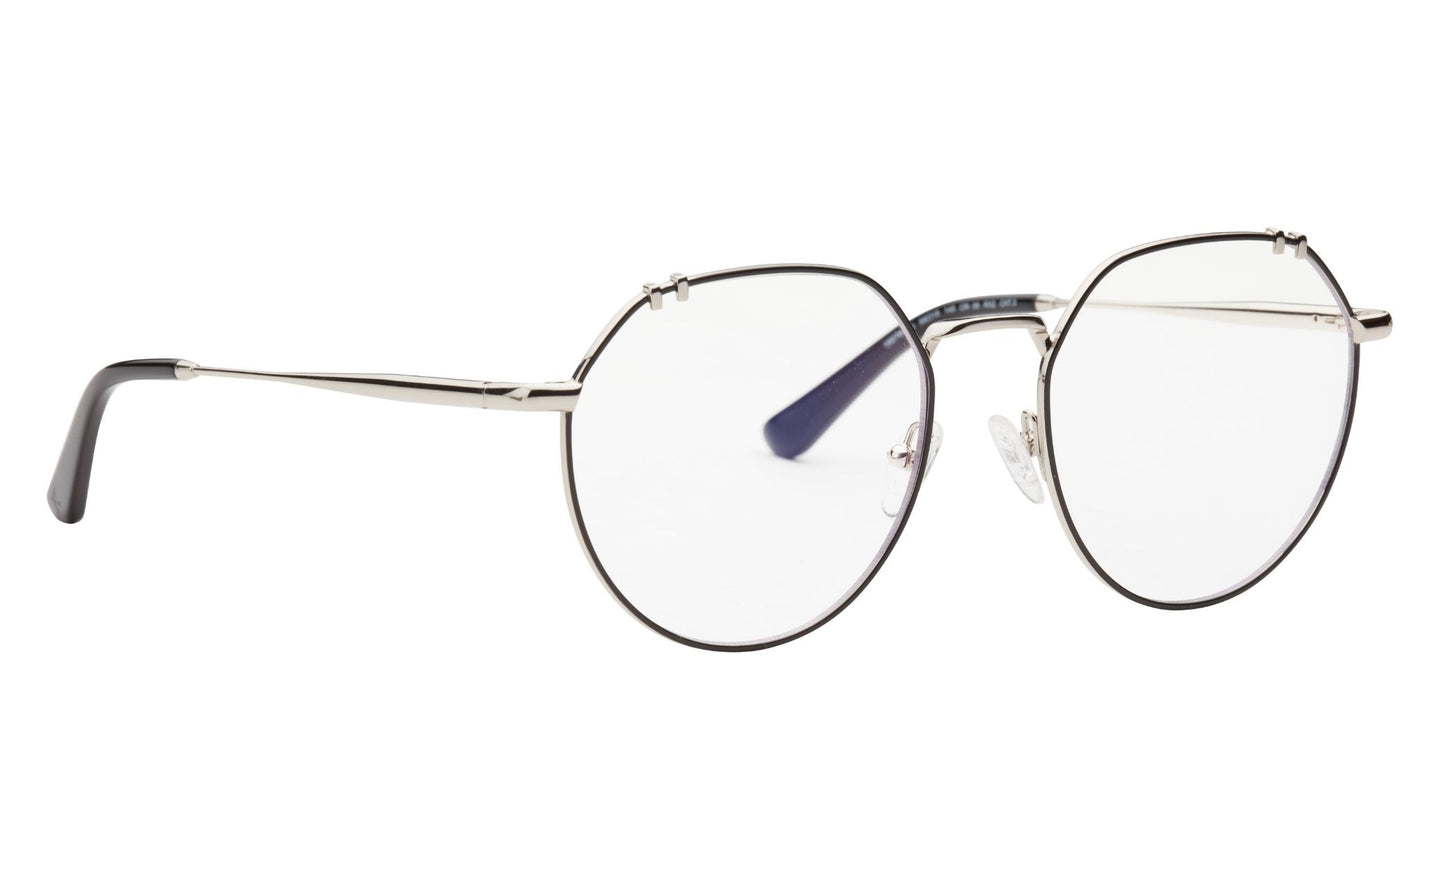 Karen Simonsen - Siena - Round Bluelight Glasses